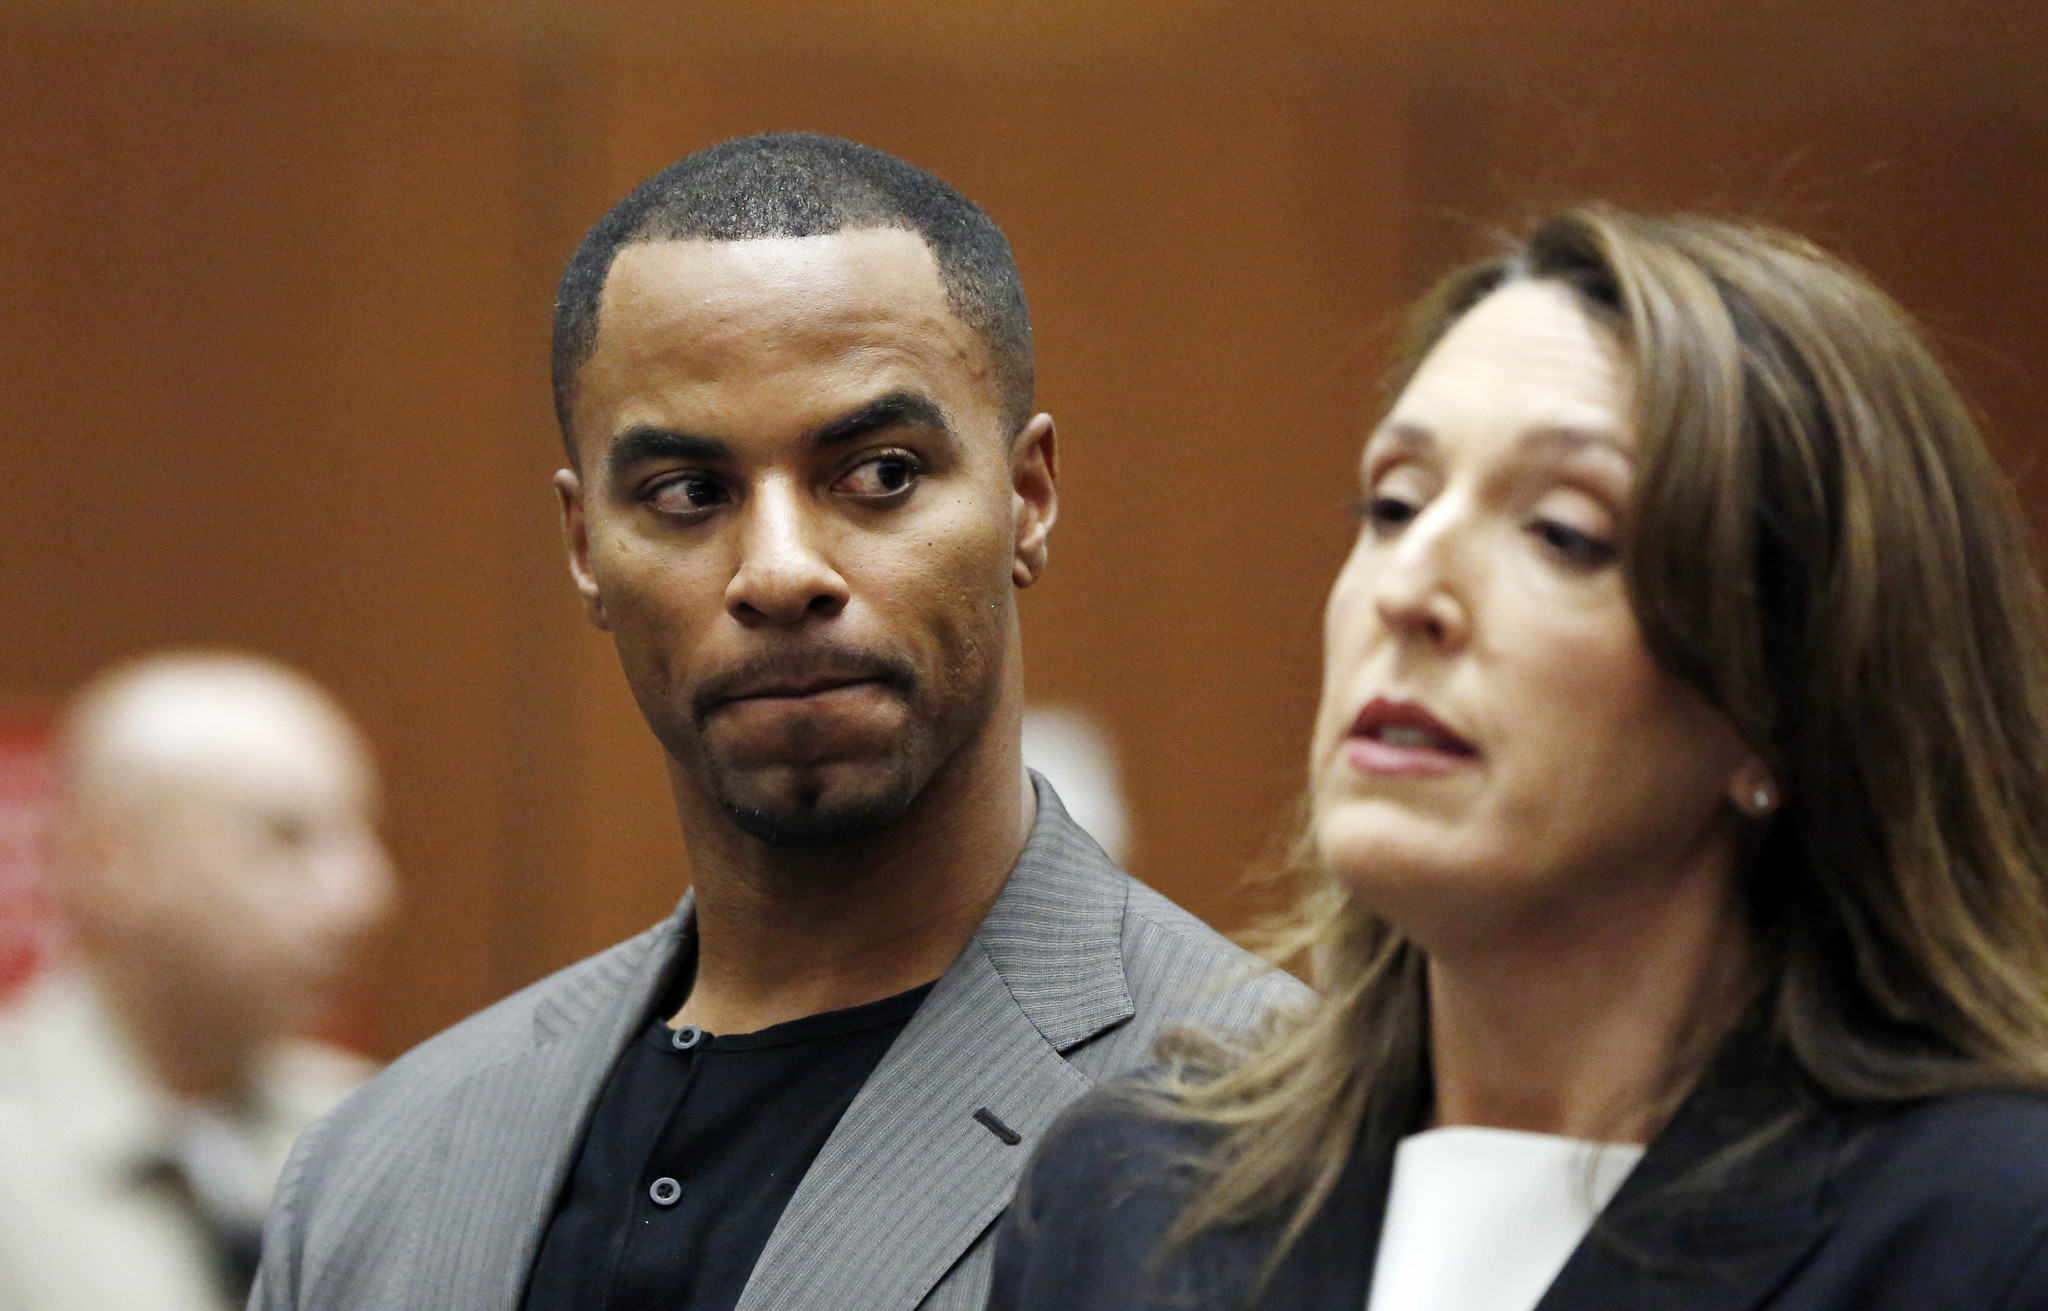 Darren Sharpers Pro Football Hall of Fame nomination causes